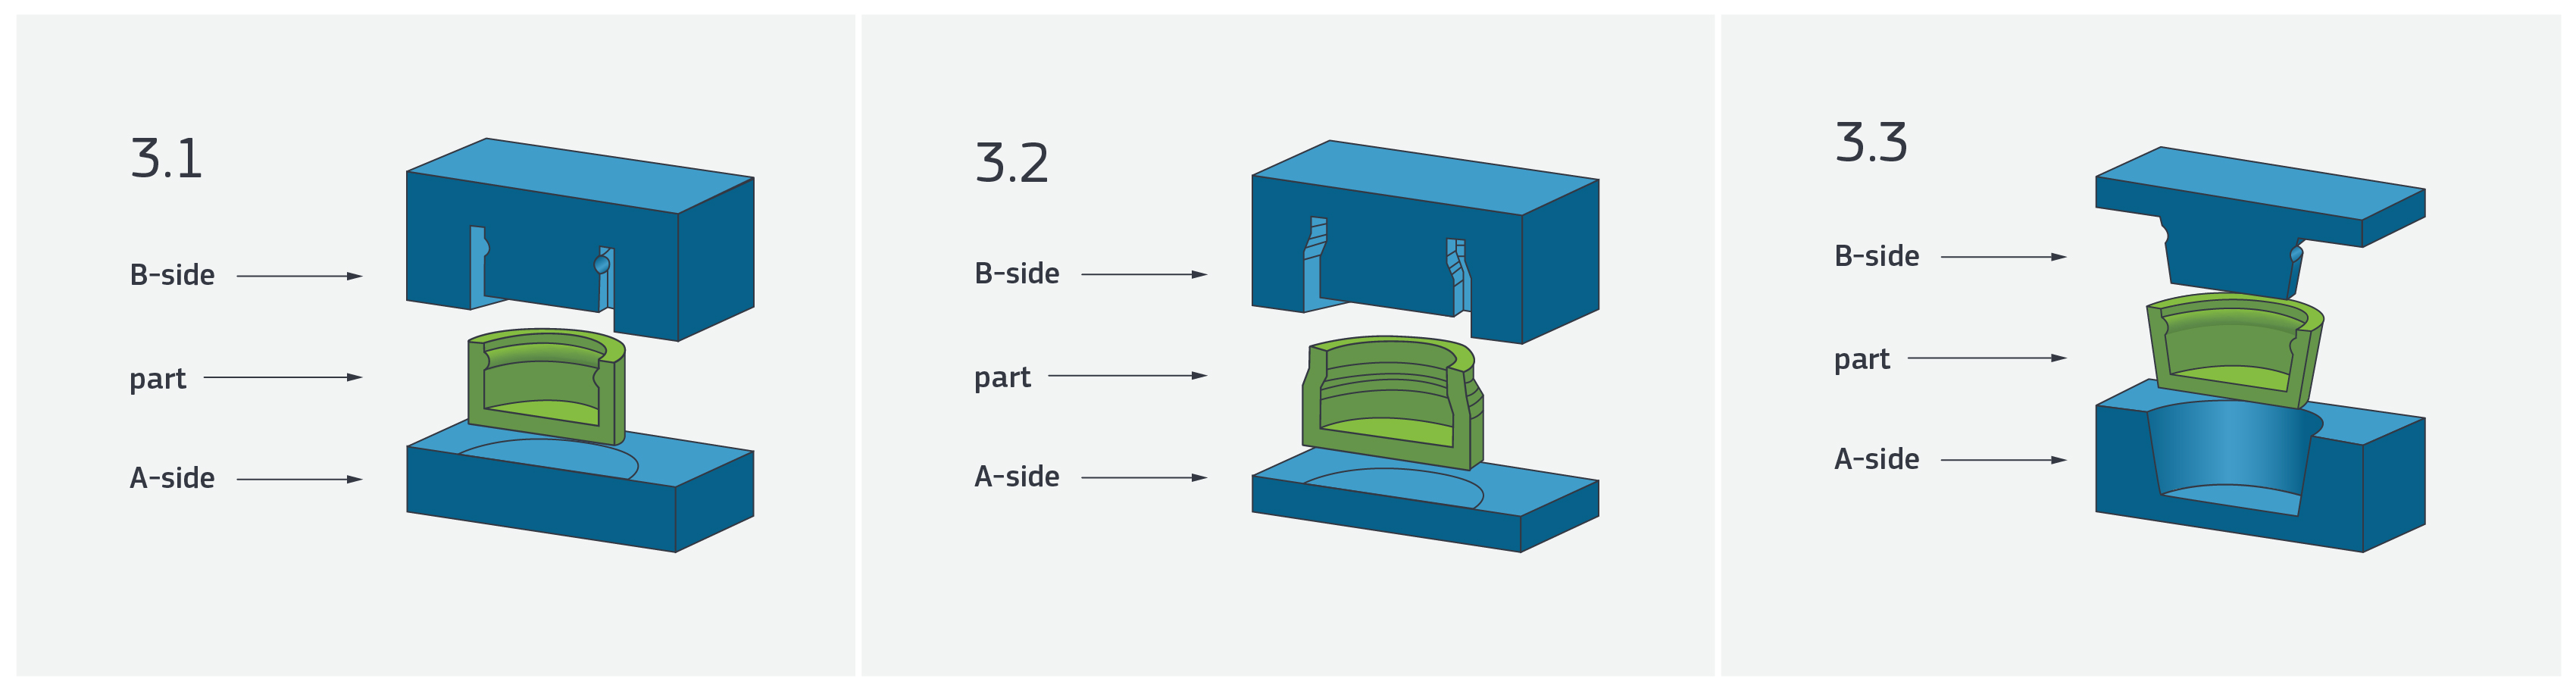 molding a part as a rib versus core-cavity molding